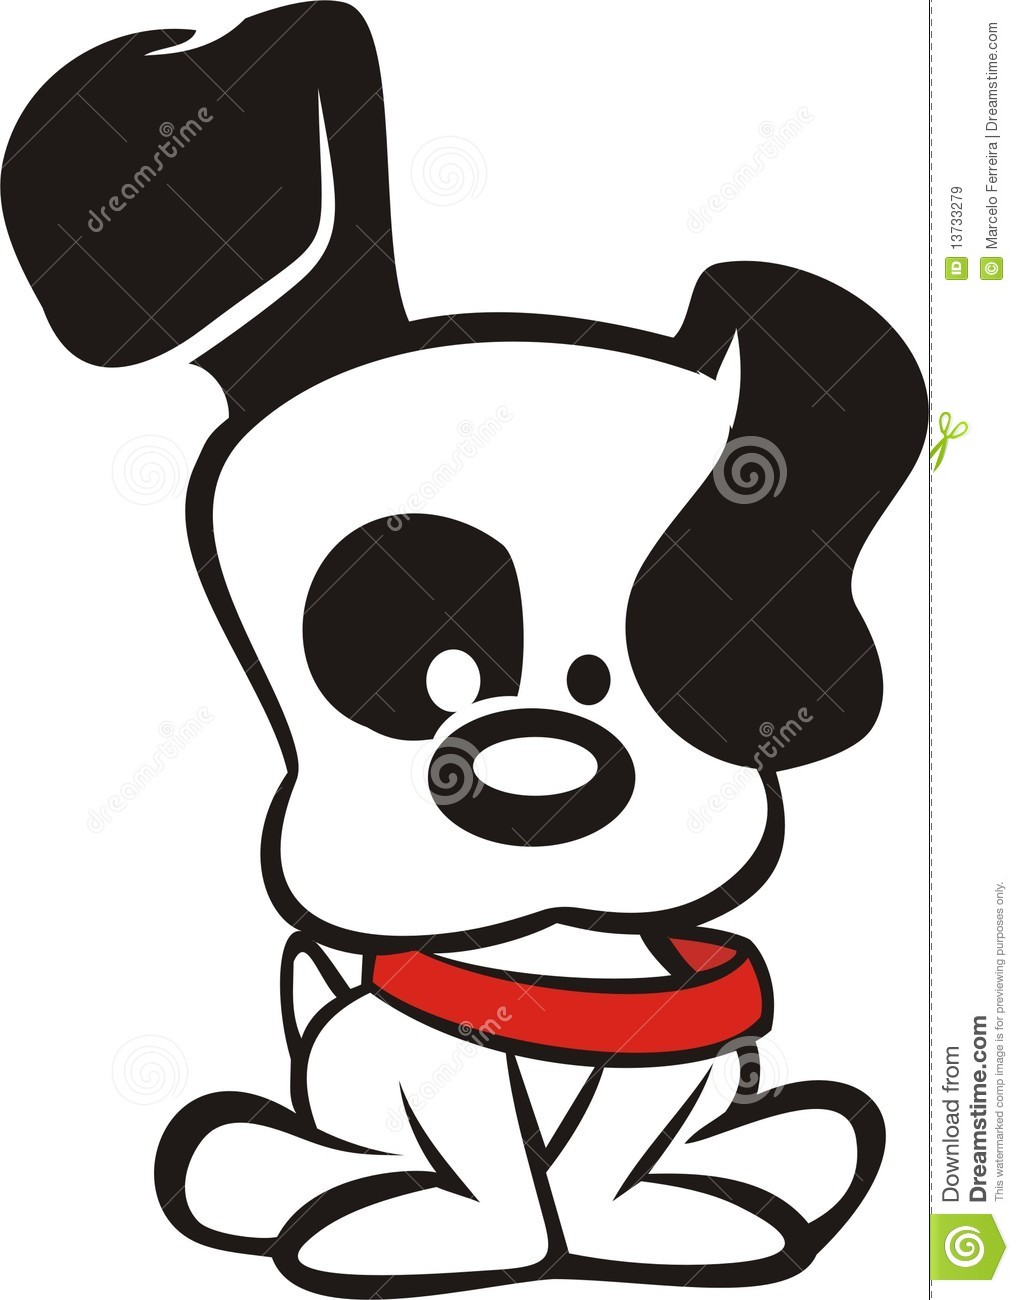 Black And White Dog Cartoon Royalty Free Stock Images